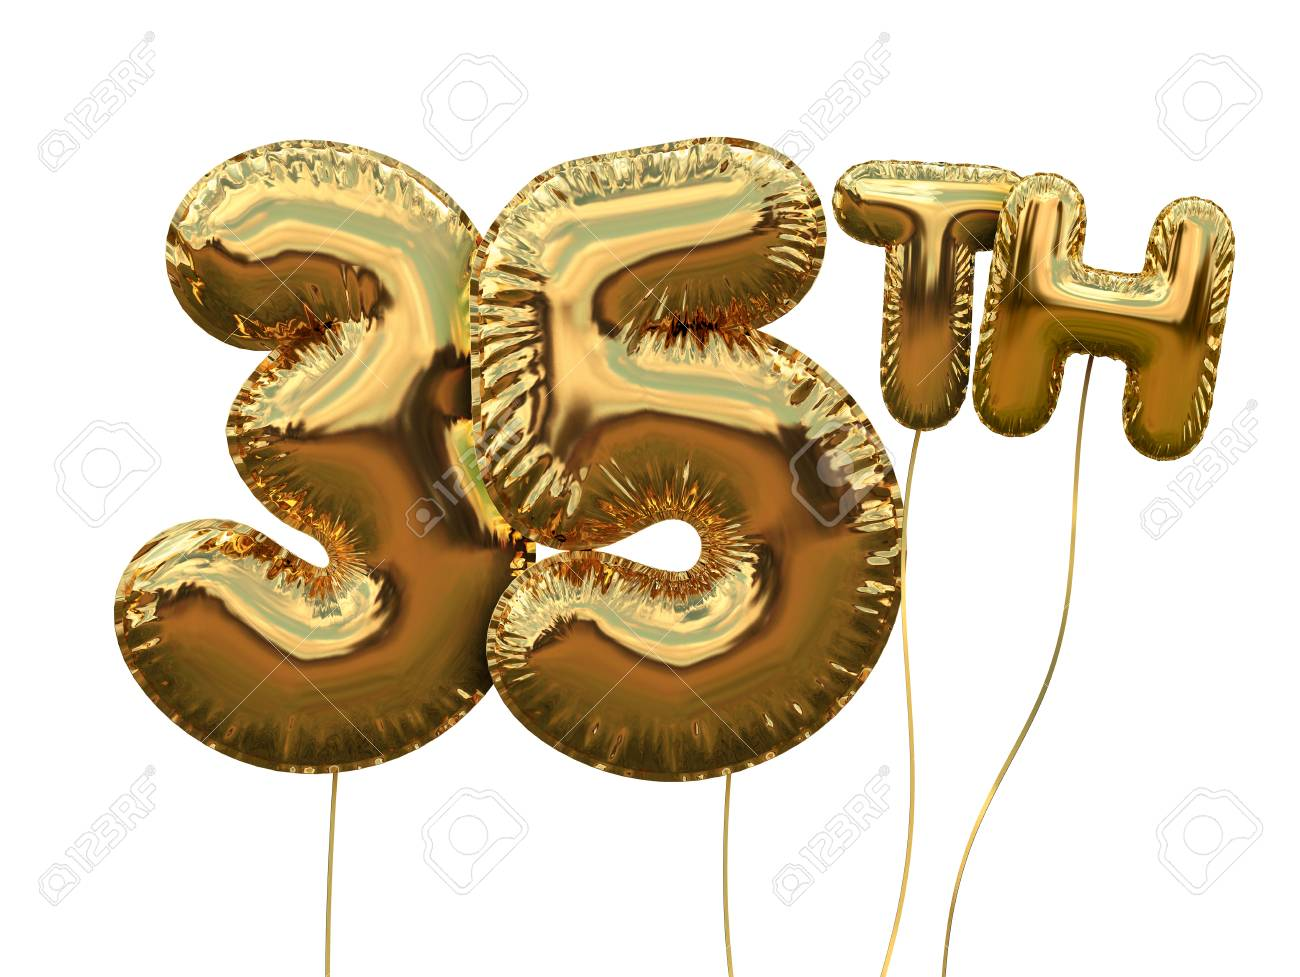 Gold Number 35 Foil Birthday Balloon Isolated On White Golden Party Celebration 3D Rendering